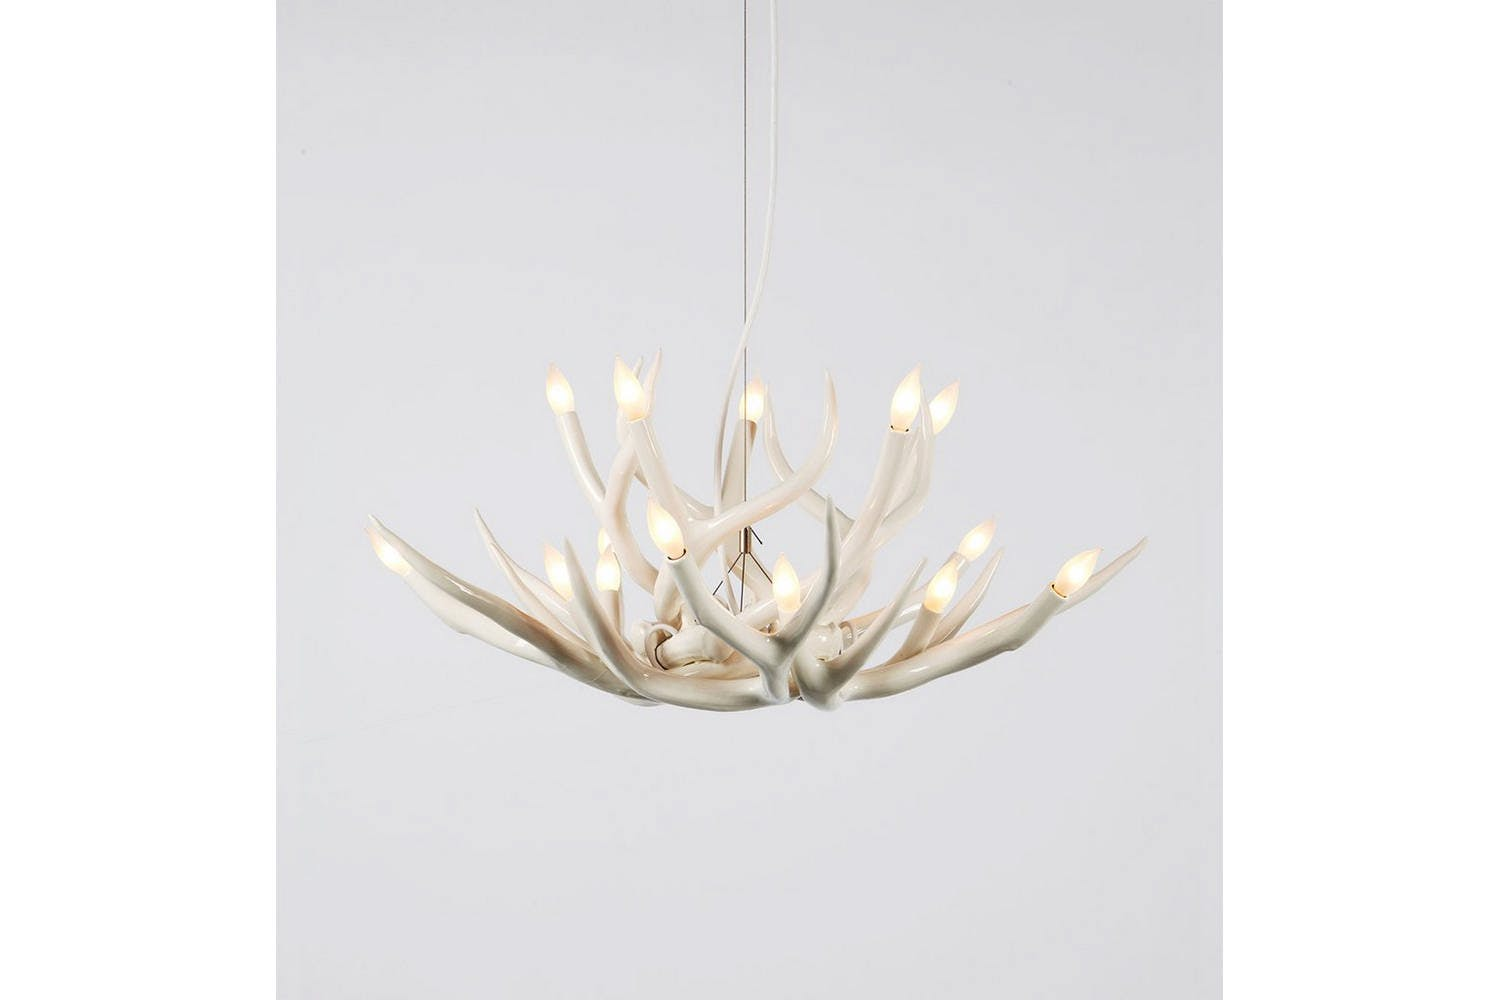 Superordinate antler chandelier 10 antlers by jason miller for superordinate antler chandelier 10 antlers by jason miller for roll hill mozeypictures Image collections